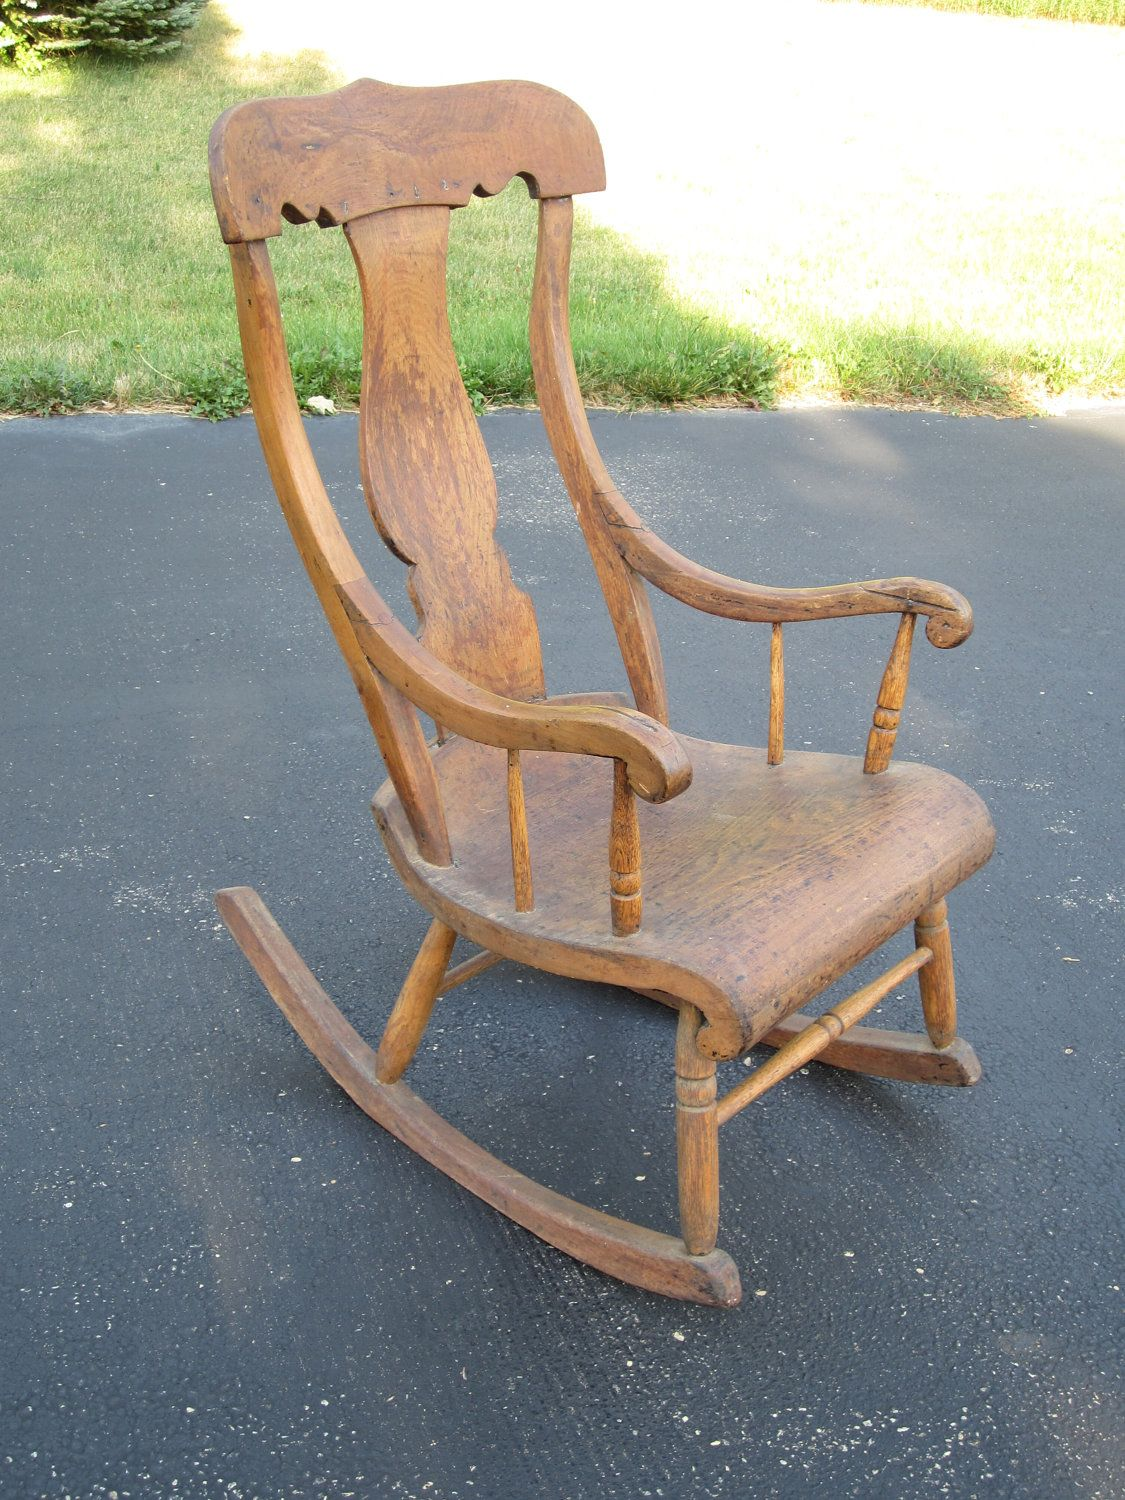 Surprising Antique Farmhouse Wooden Wood Rocking Chair Rocker With Urn Gmtry Best Dining Table And Chair Ideas Images Gmtryco